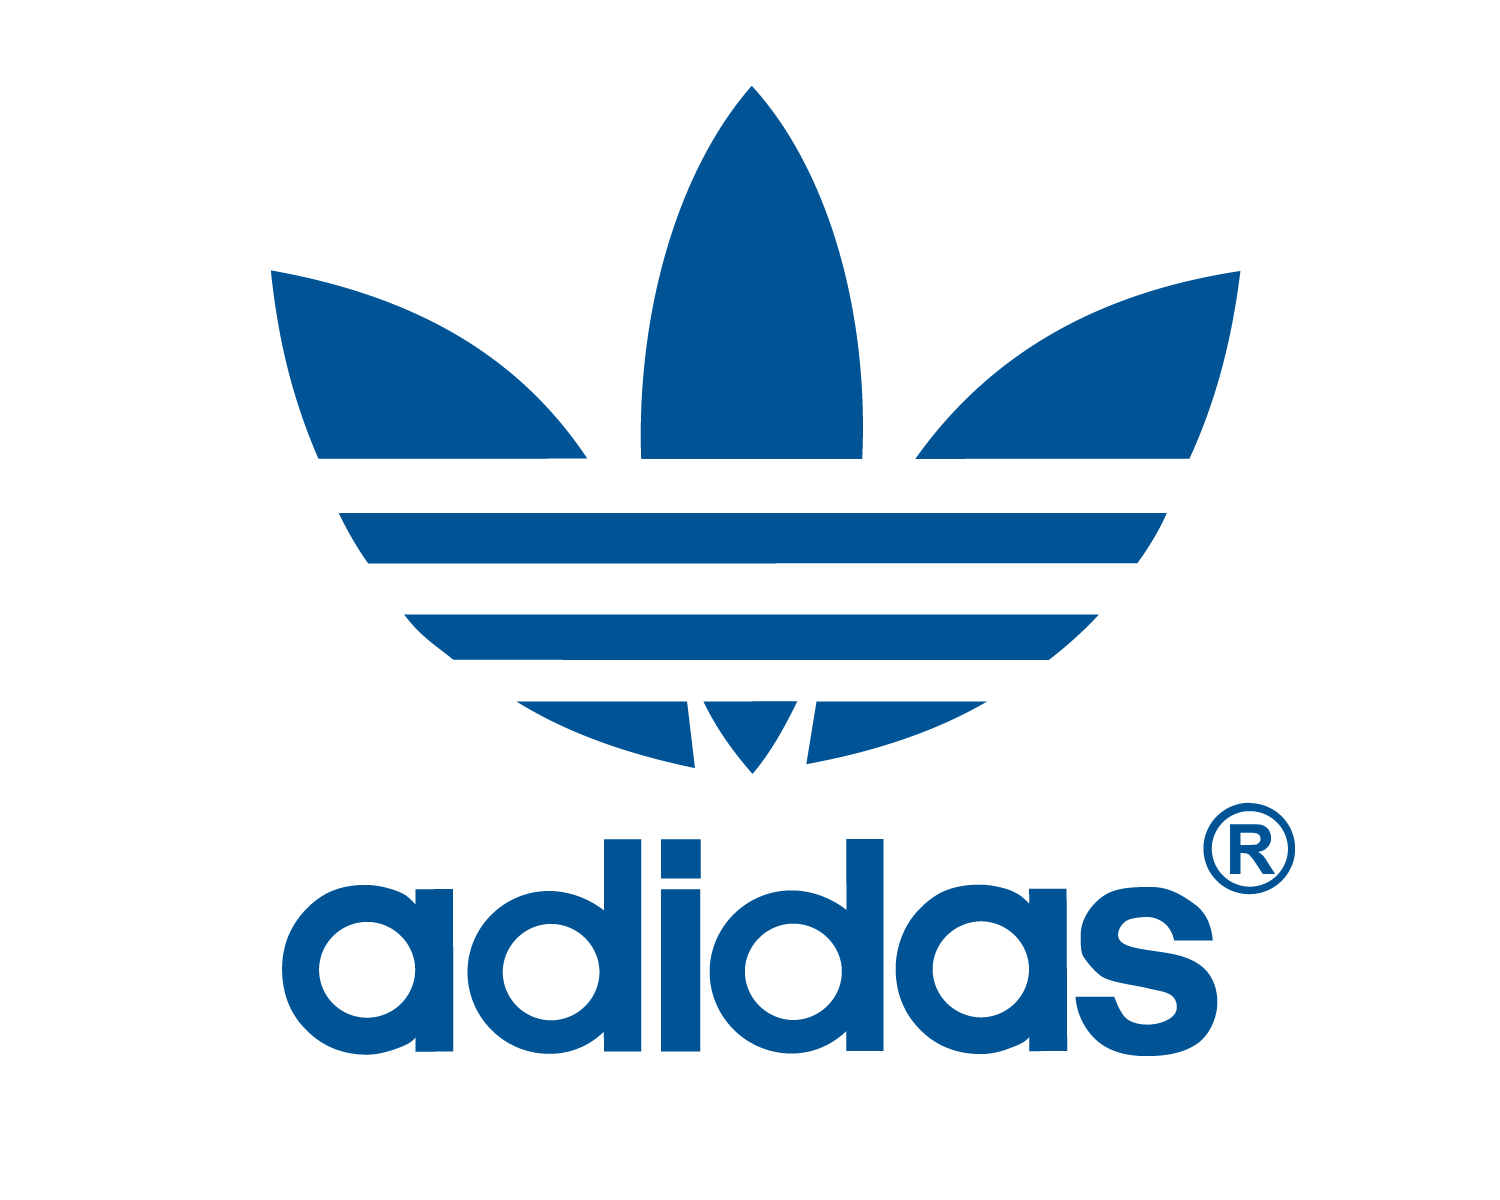 Adidas Hd Png Transparent Adidas Hd Png Images Pluspng